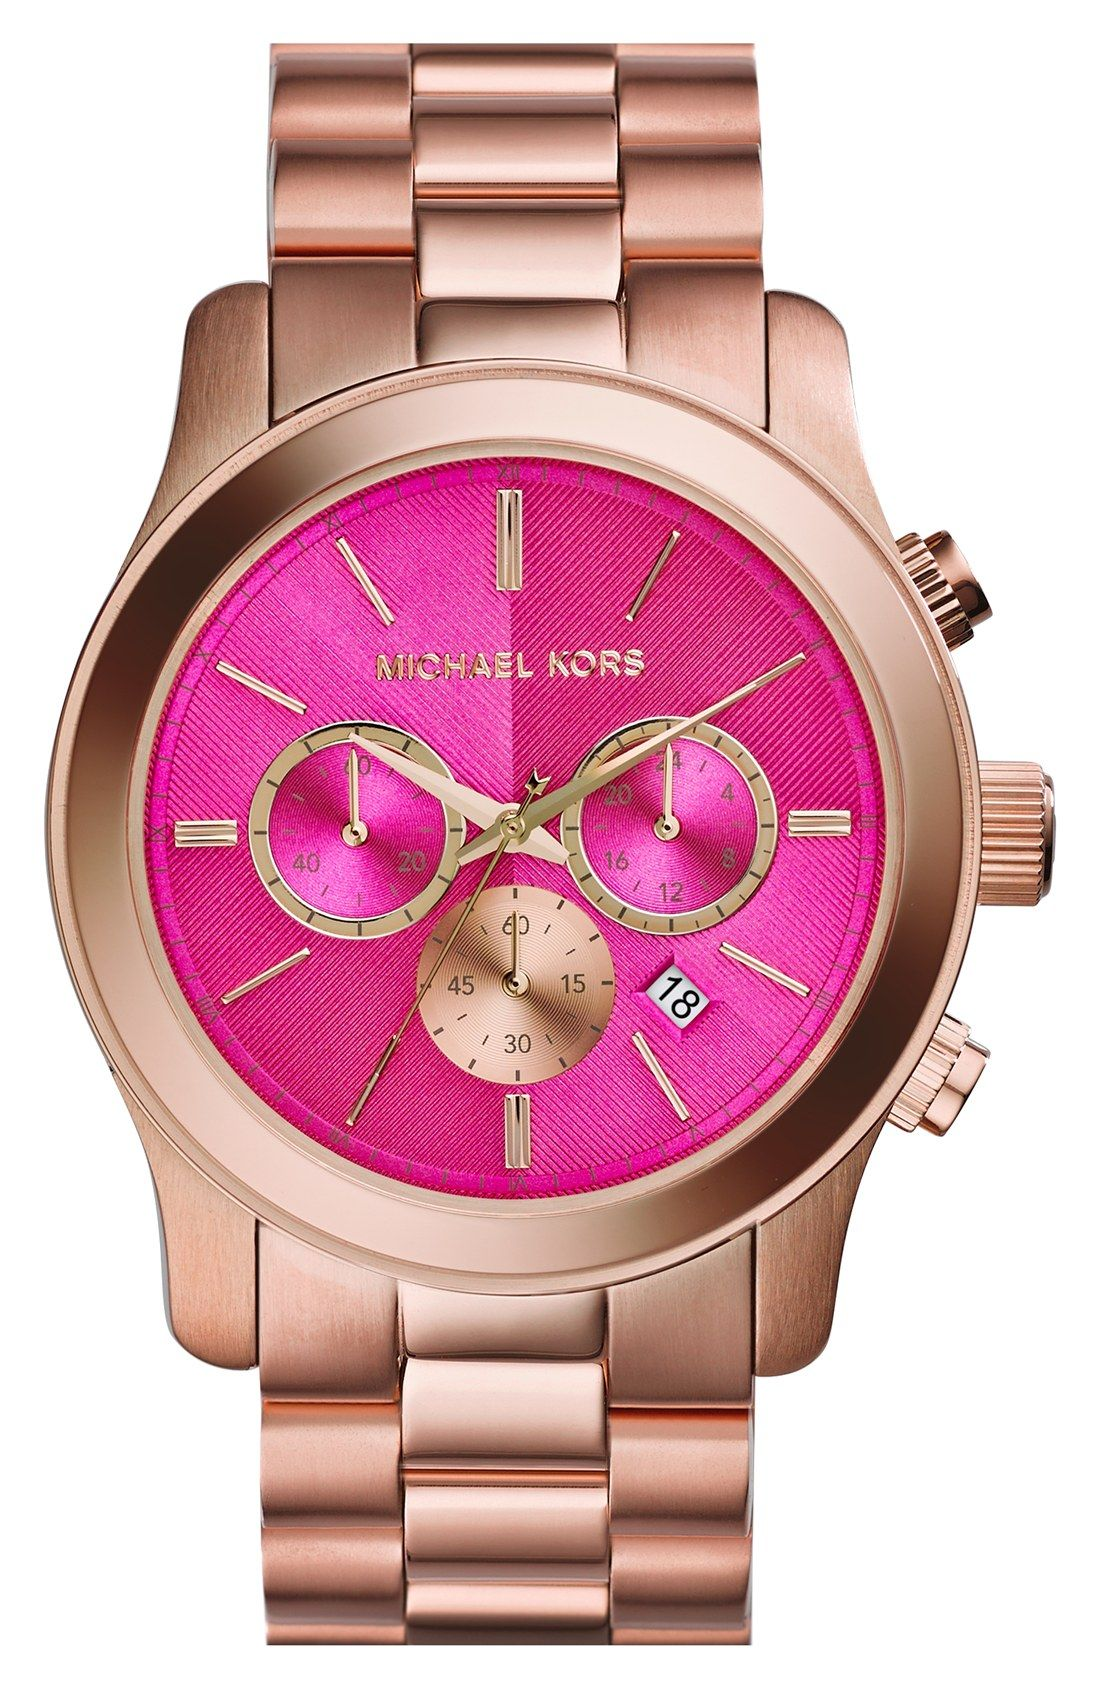 Michael Kors 'Large Runway' Rose Gold Plated Watch, 45mm